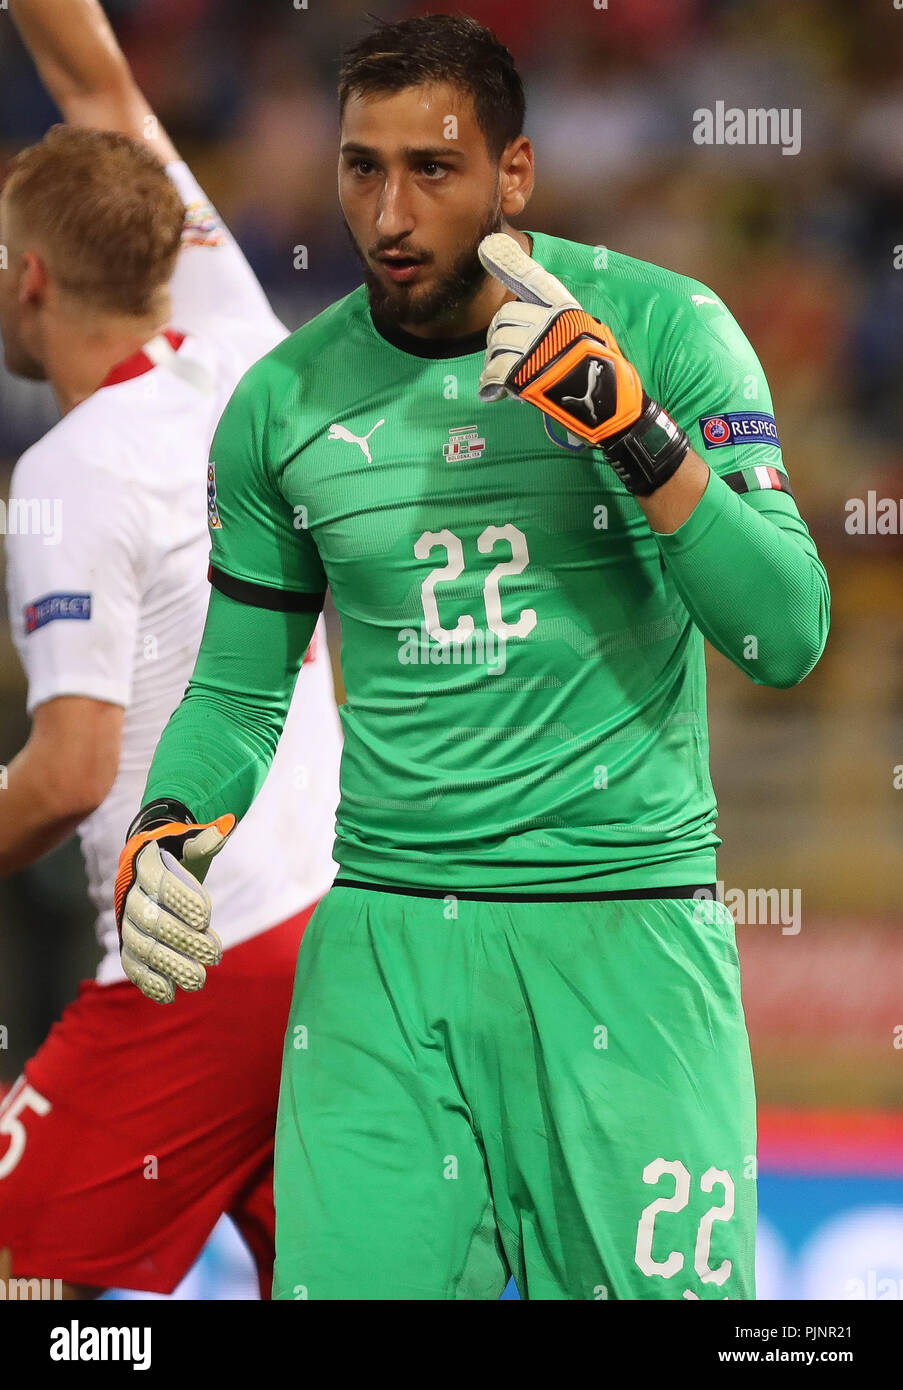 Bologna Italy 7th September 2018 Gianluigi Donnarumma Italy During The Uefa Nations League League A Group 3 Football Match Between Italy And Poland On September 7 2018 At Renato Dall Ara Stadium In